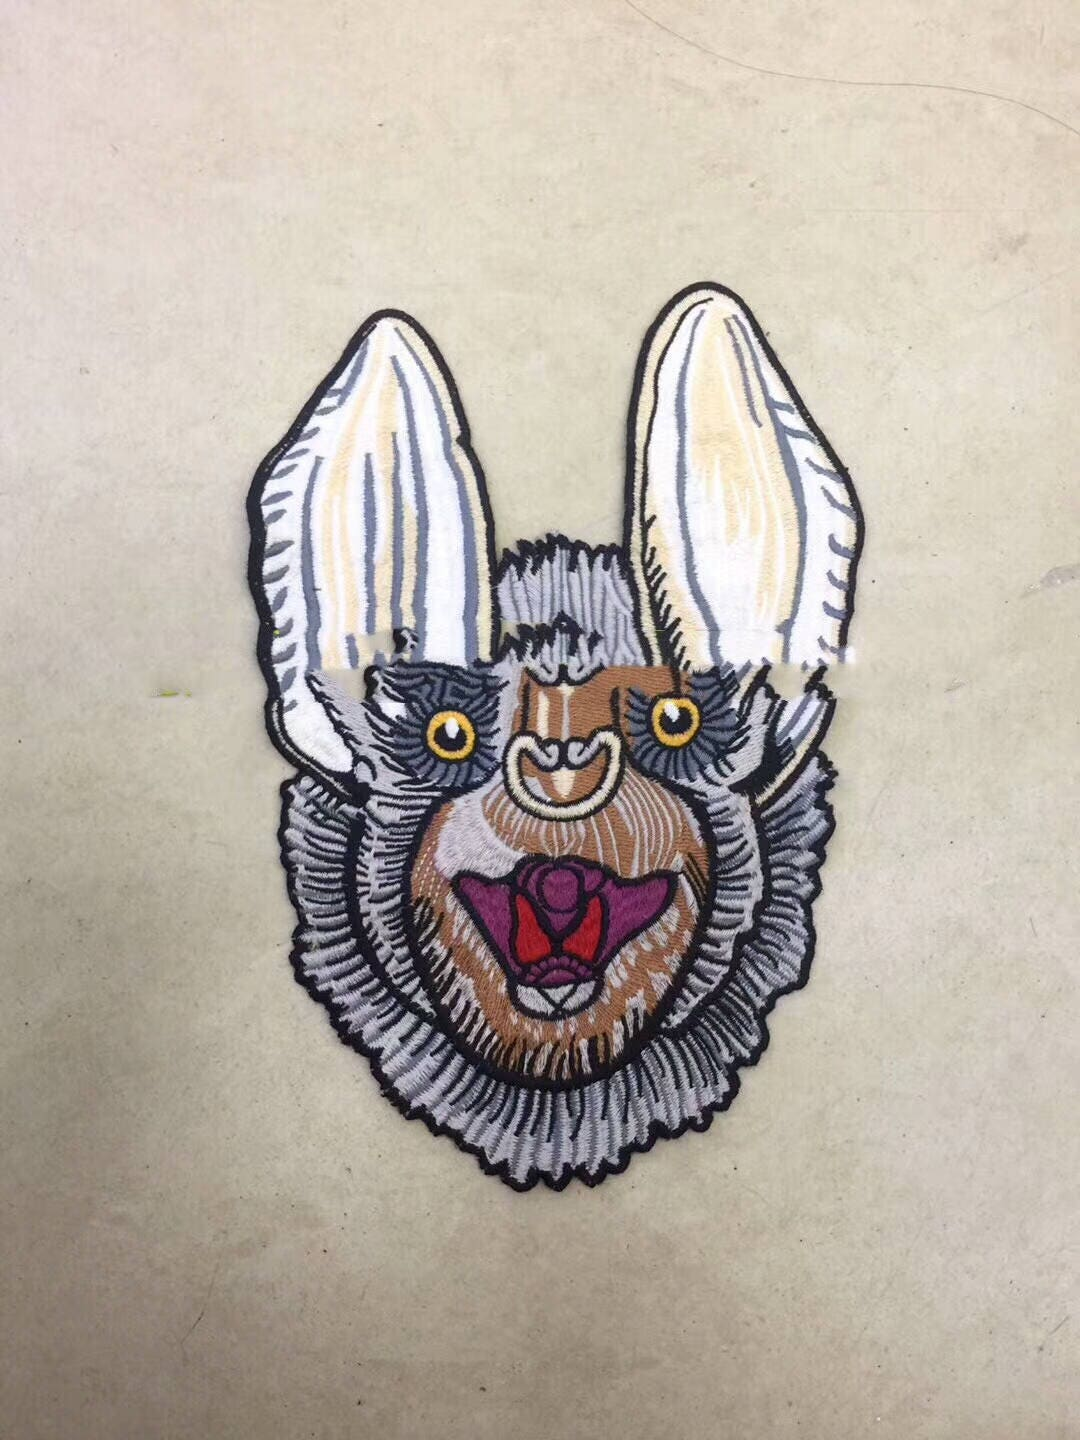 d111045d146 Gucci Rabbit Head Patch